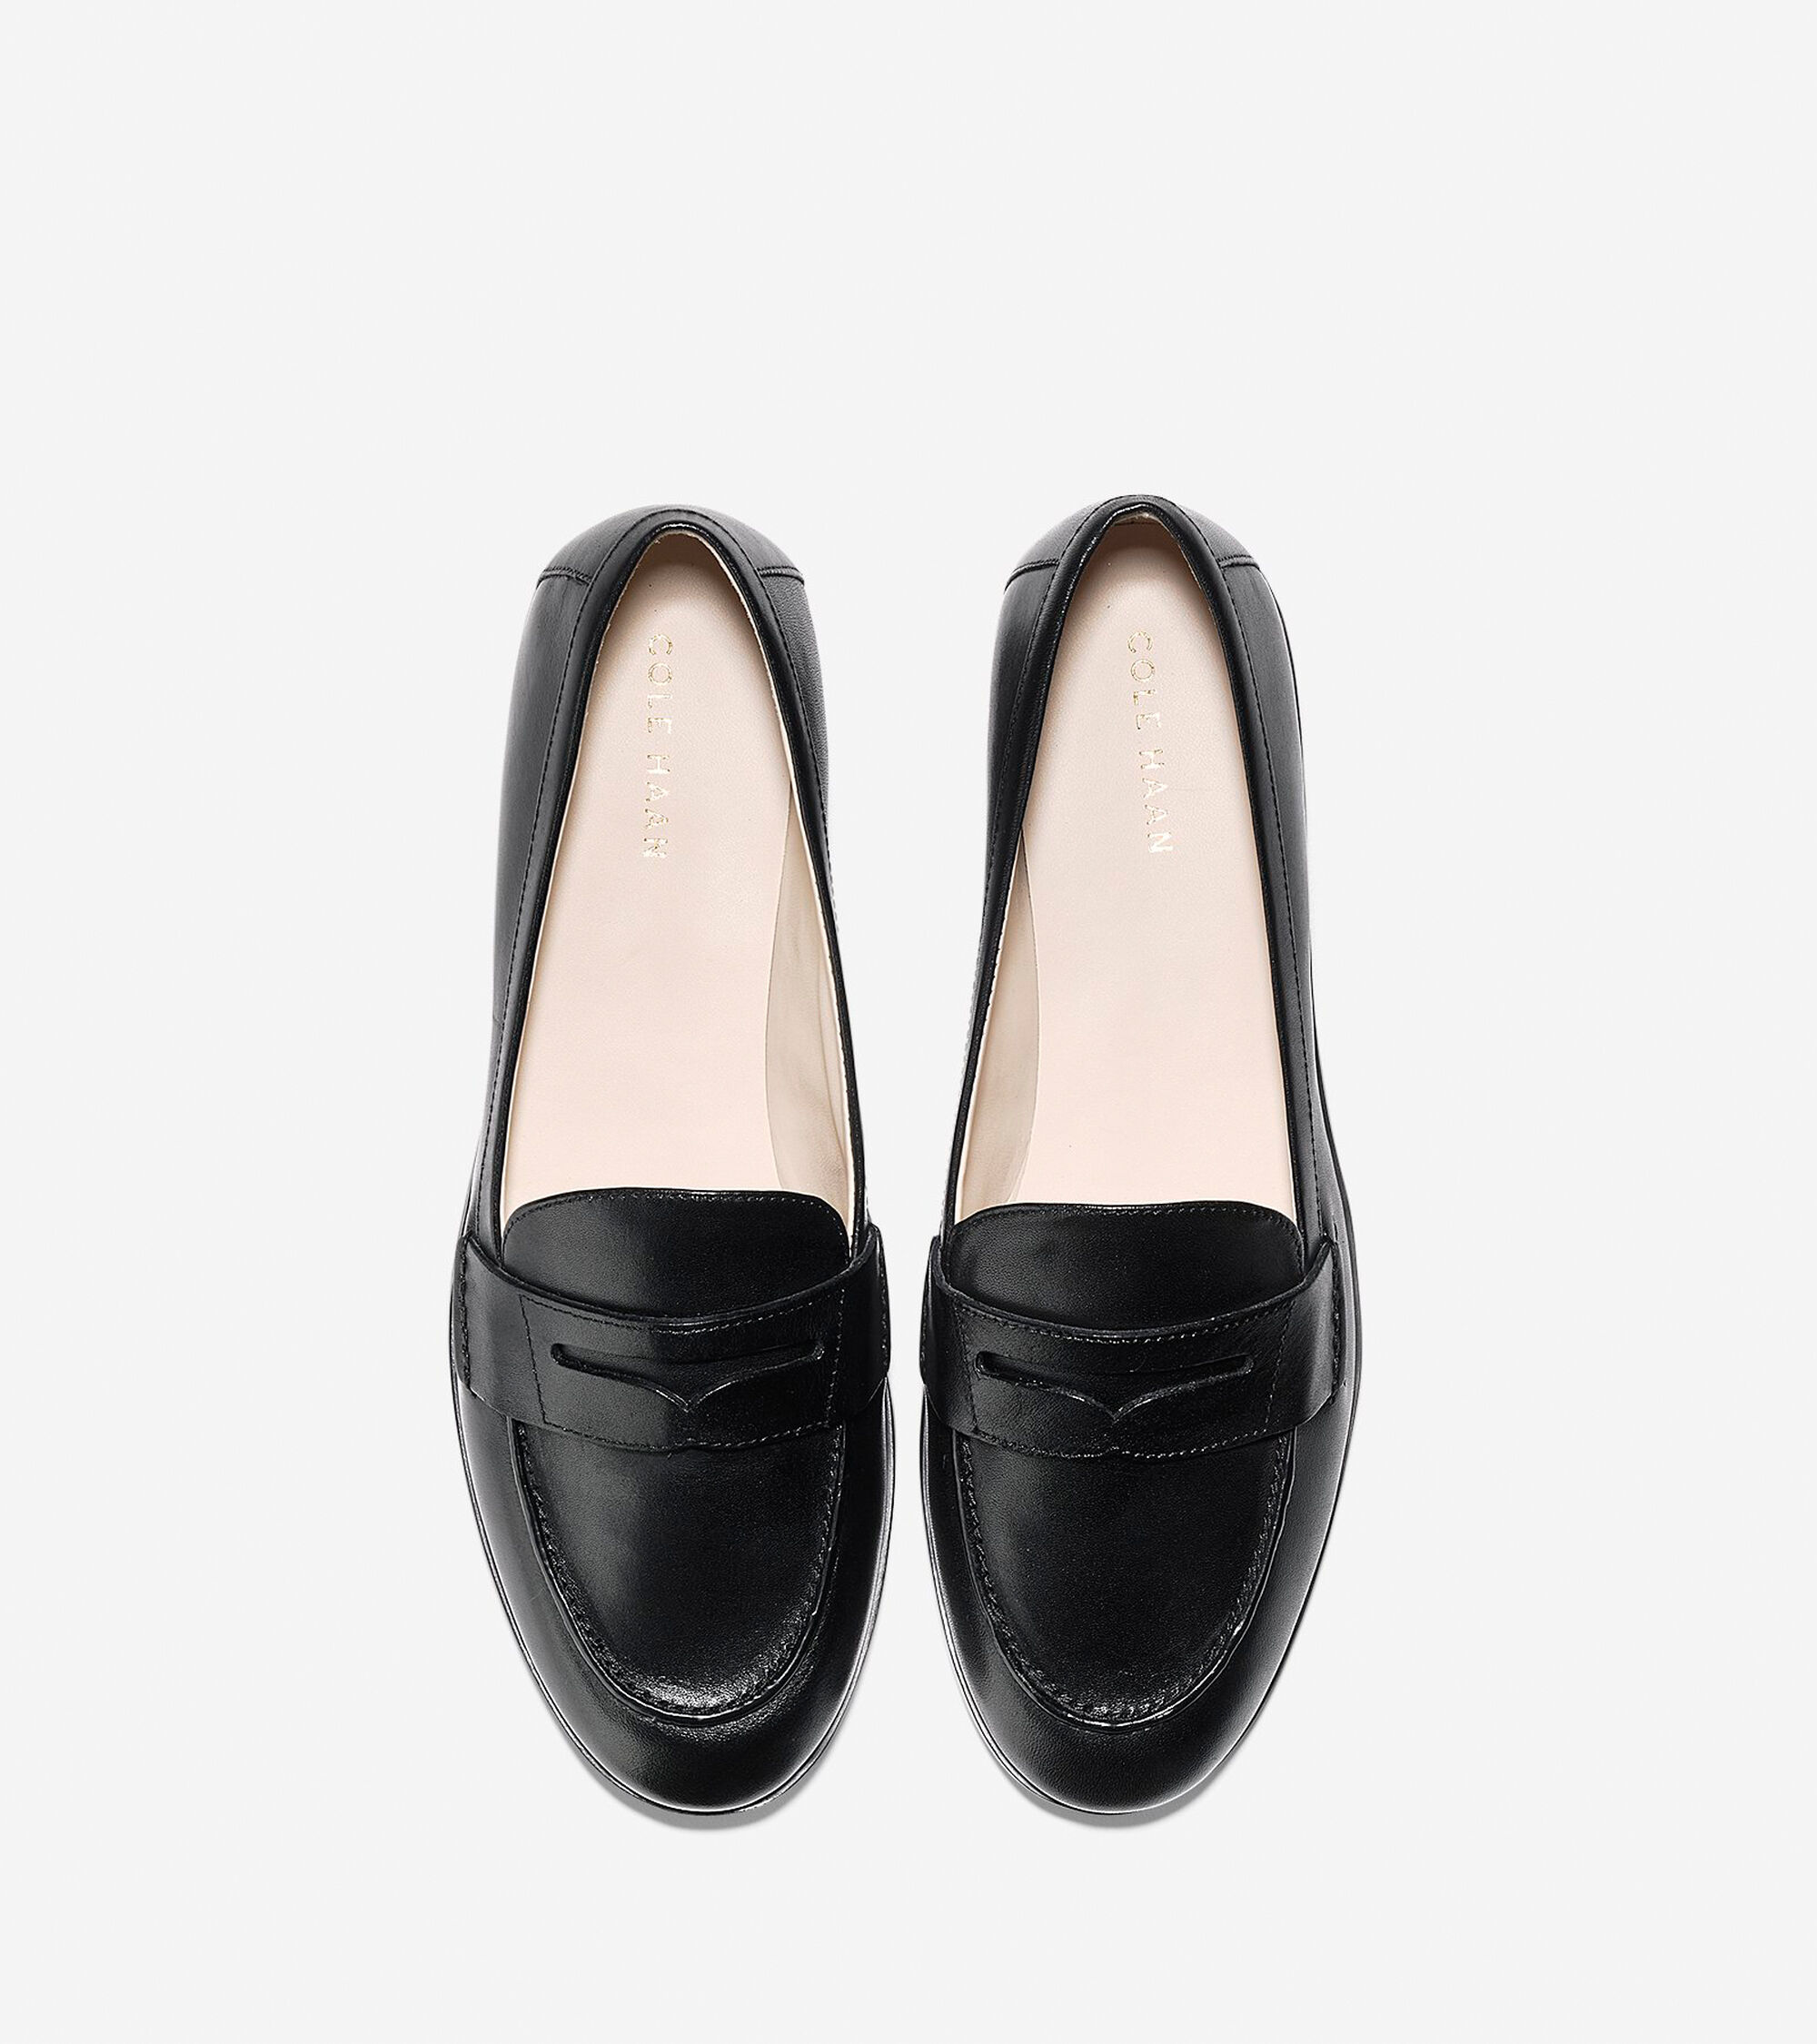 fa2939ec079 ... Women s Pinch Grand Penny Loafer  Women s Pinch Grand Penny Loafer   Women s Pinch Grand Penny Loafer.  COLEHAAN